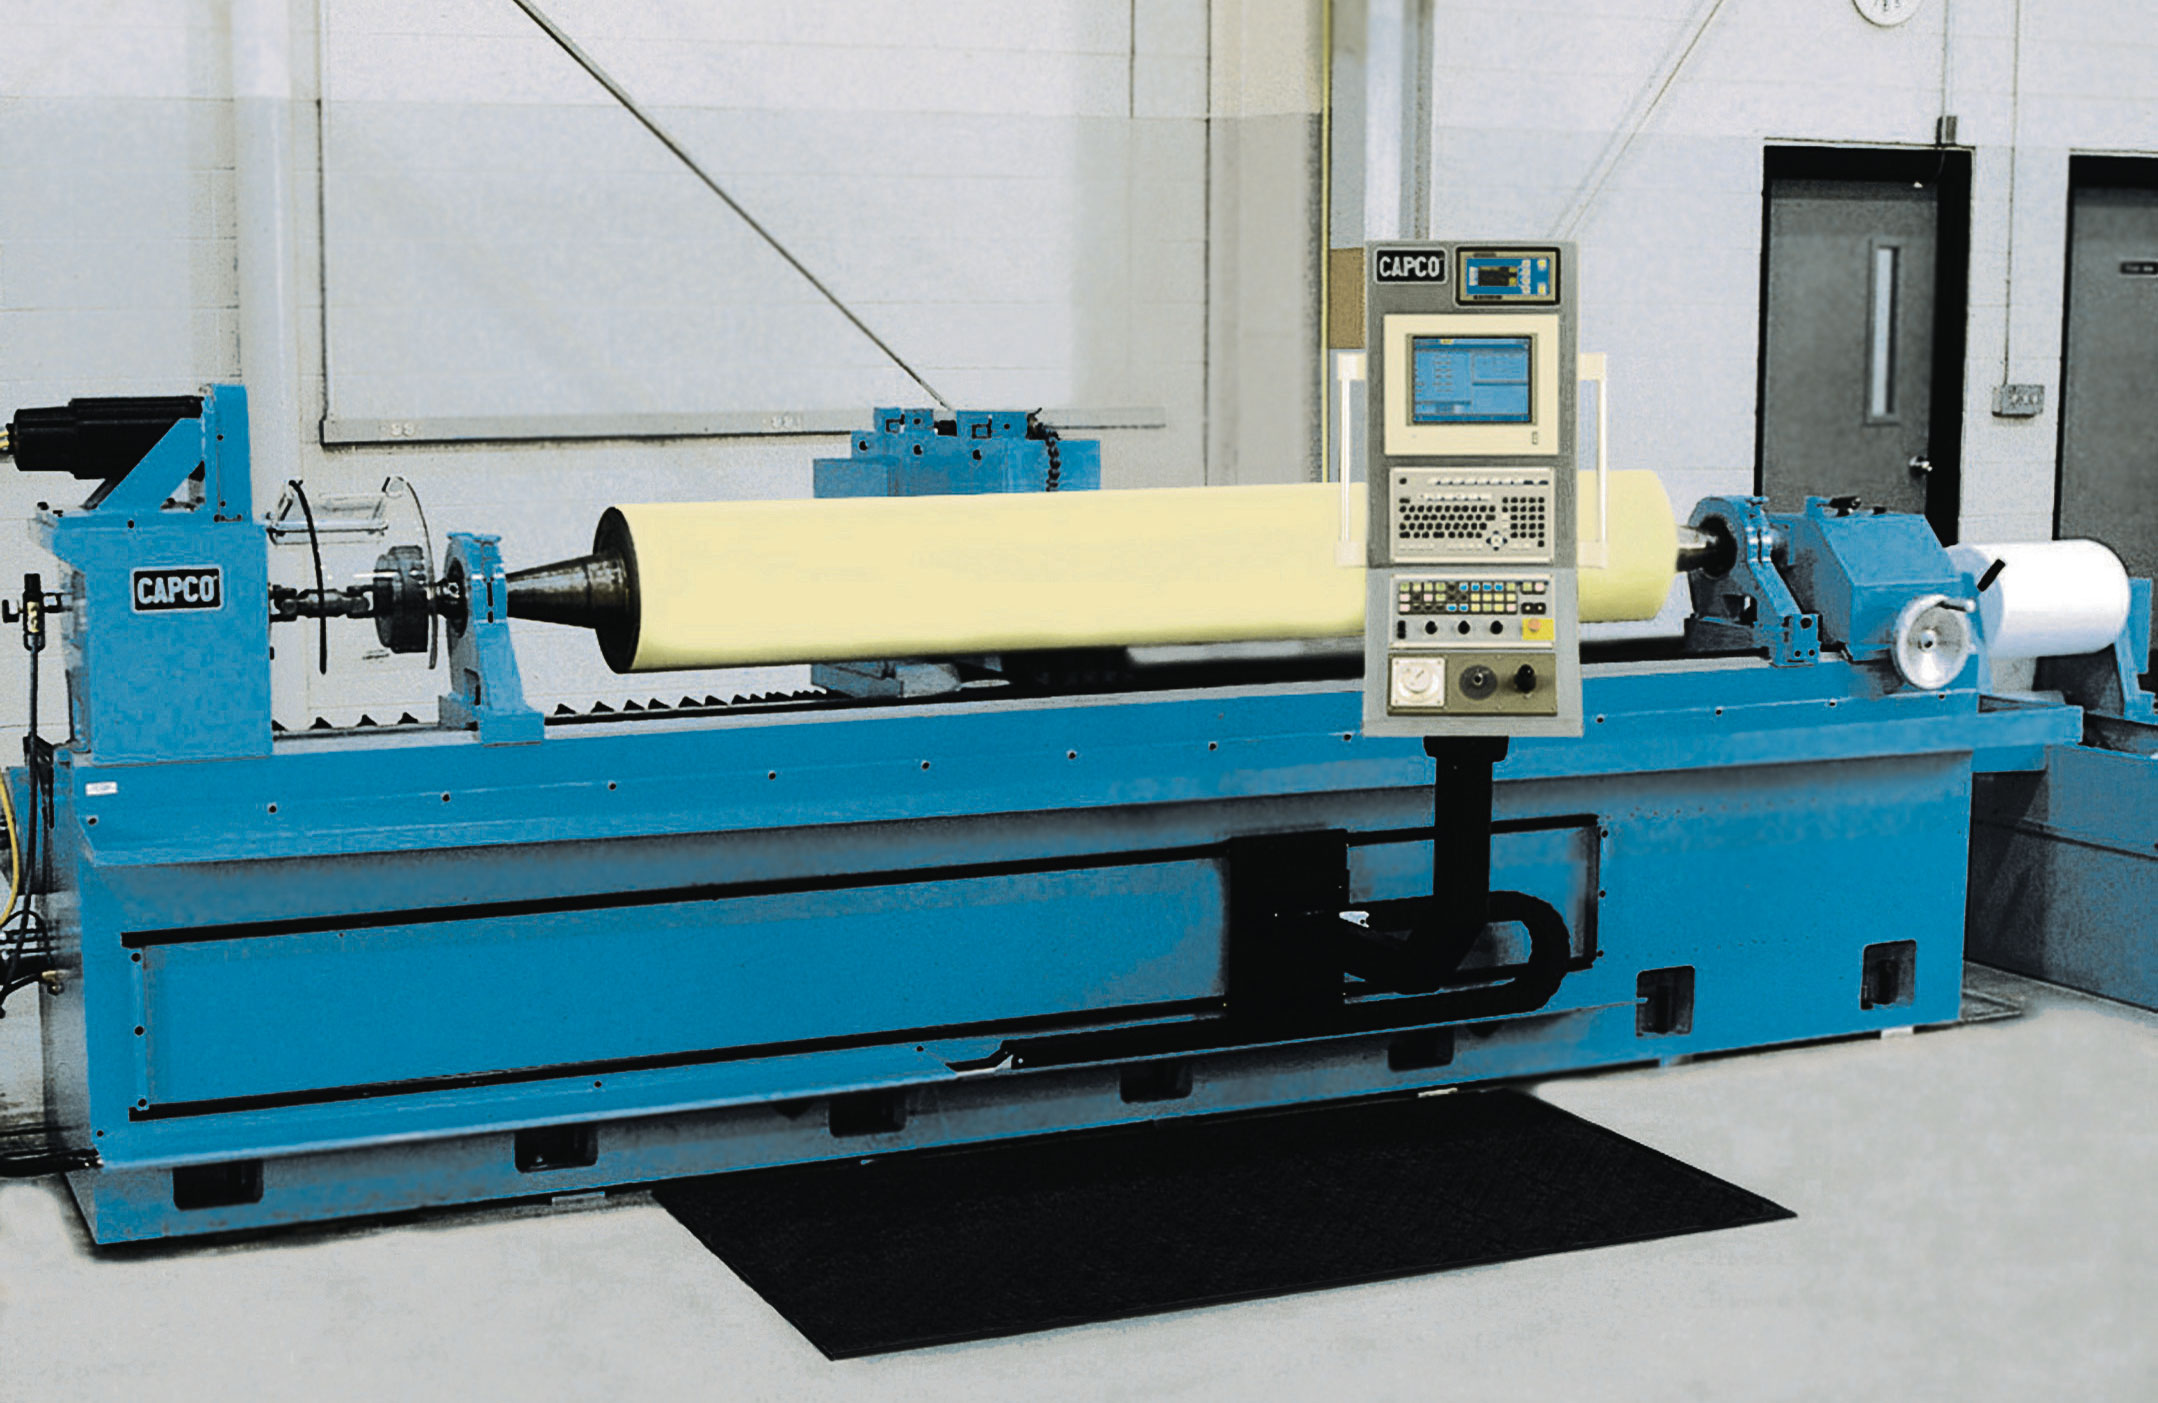 grinding machine Thanks to the correct granulation and optimum grinding pressure, vollmer  carbide tool grinding machines ensure maximum efficiency for your precision  tools.